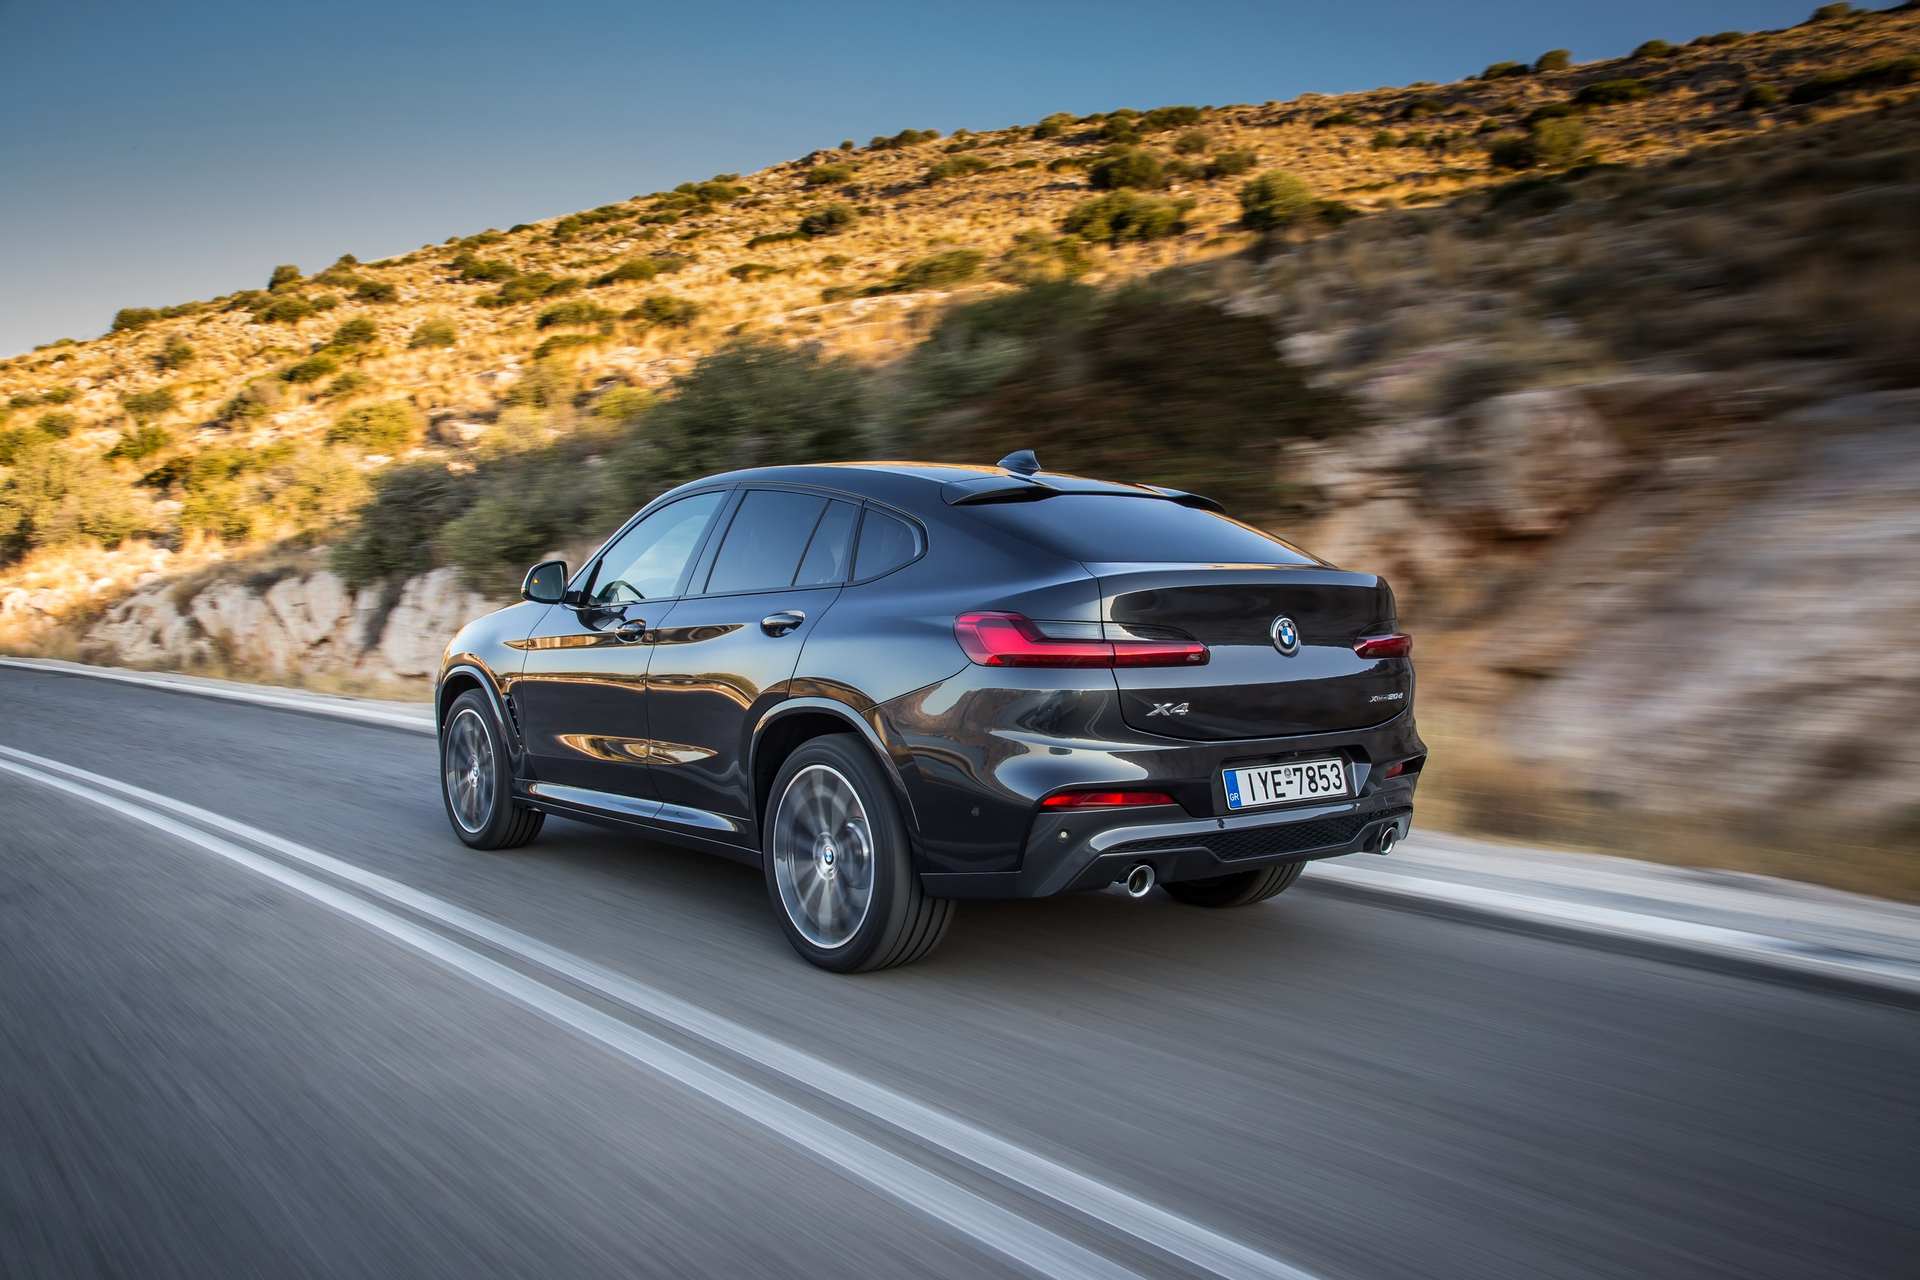 BMW_X4_greek_presskit_0095